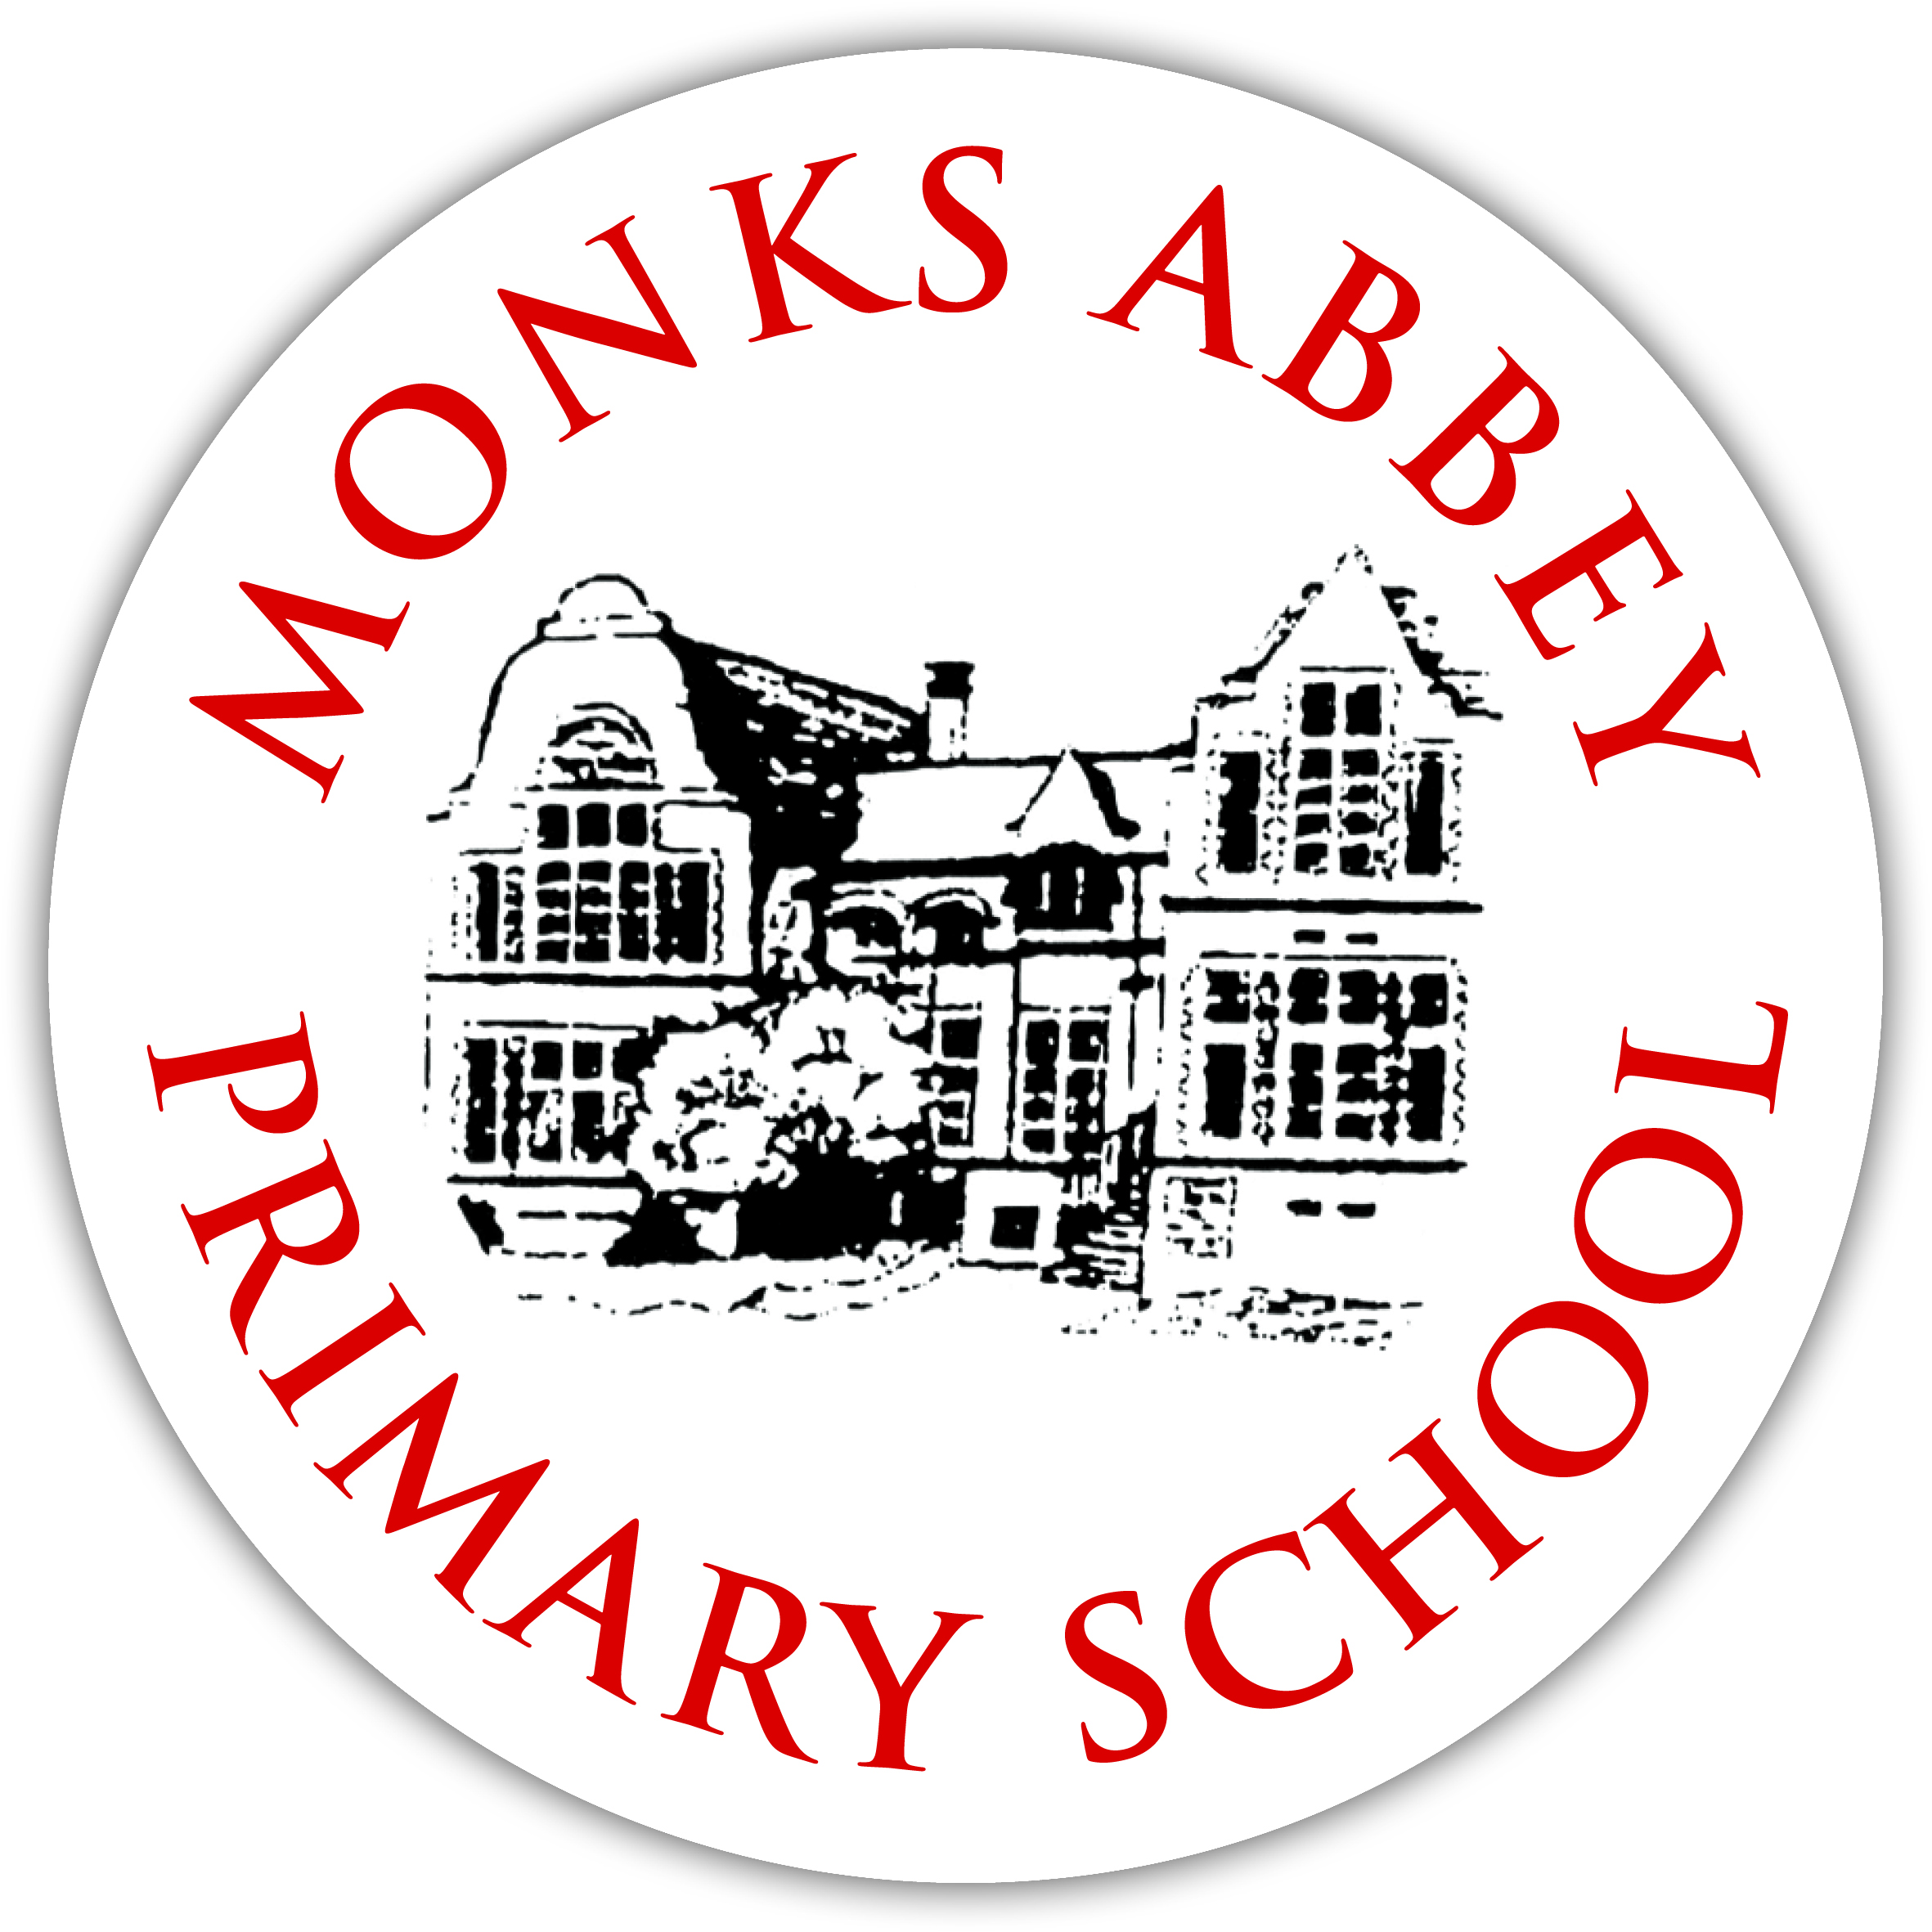 Monks Abbey Primary School